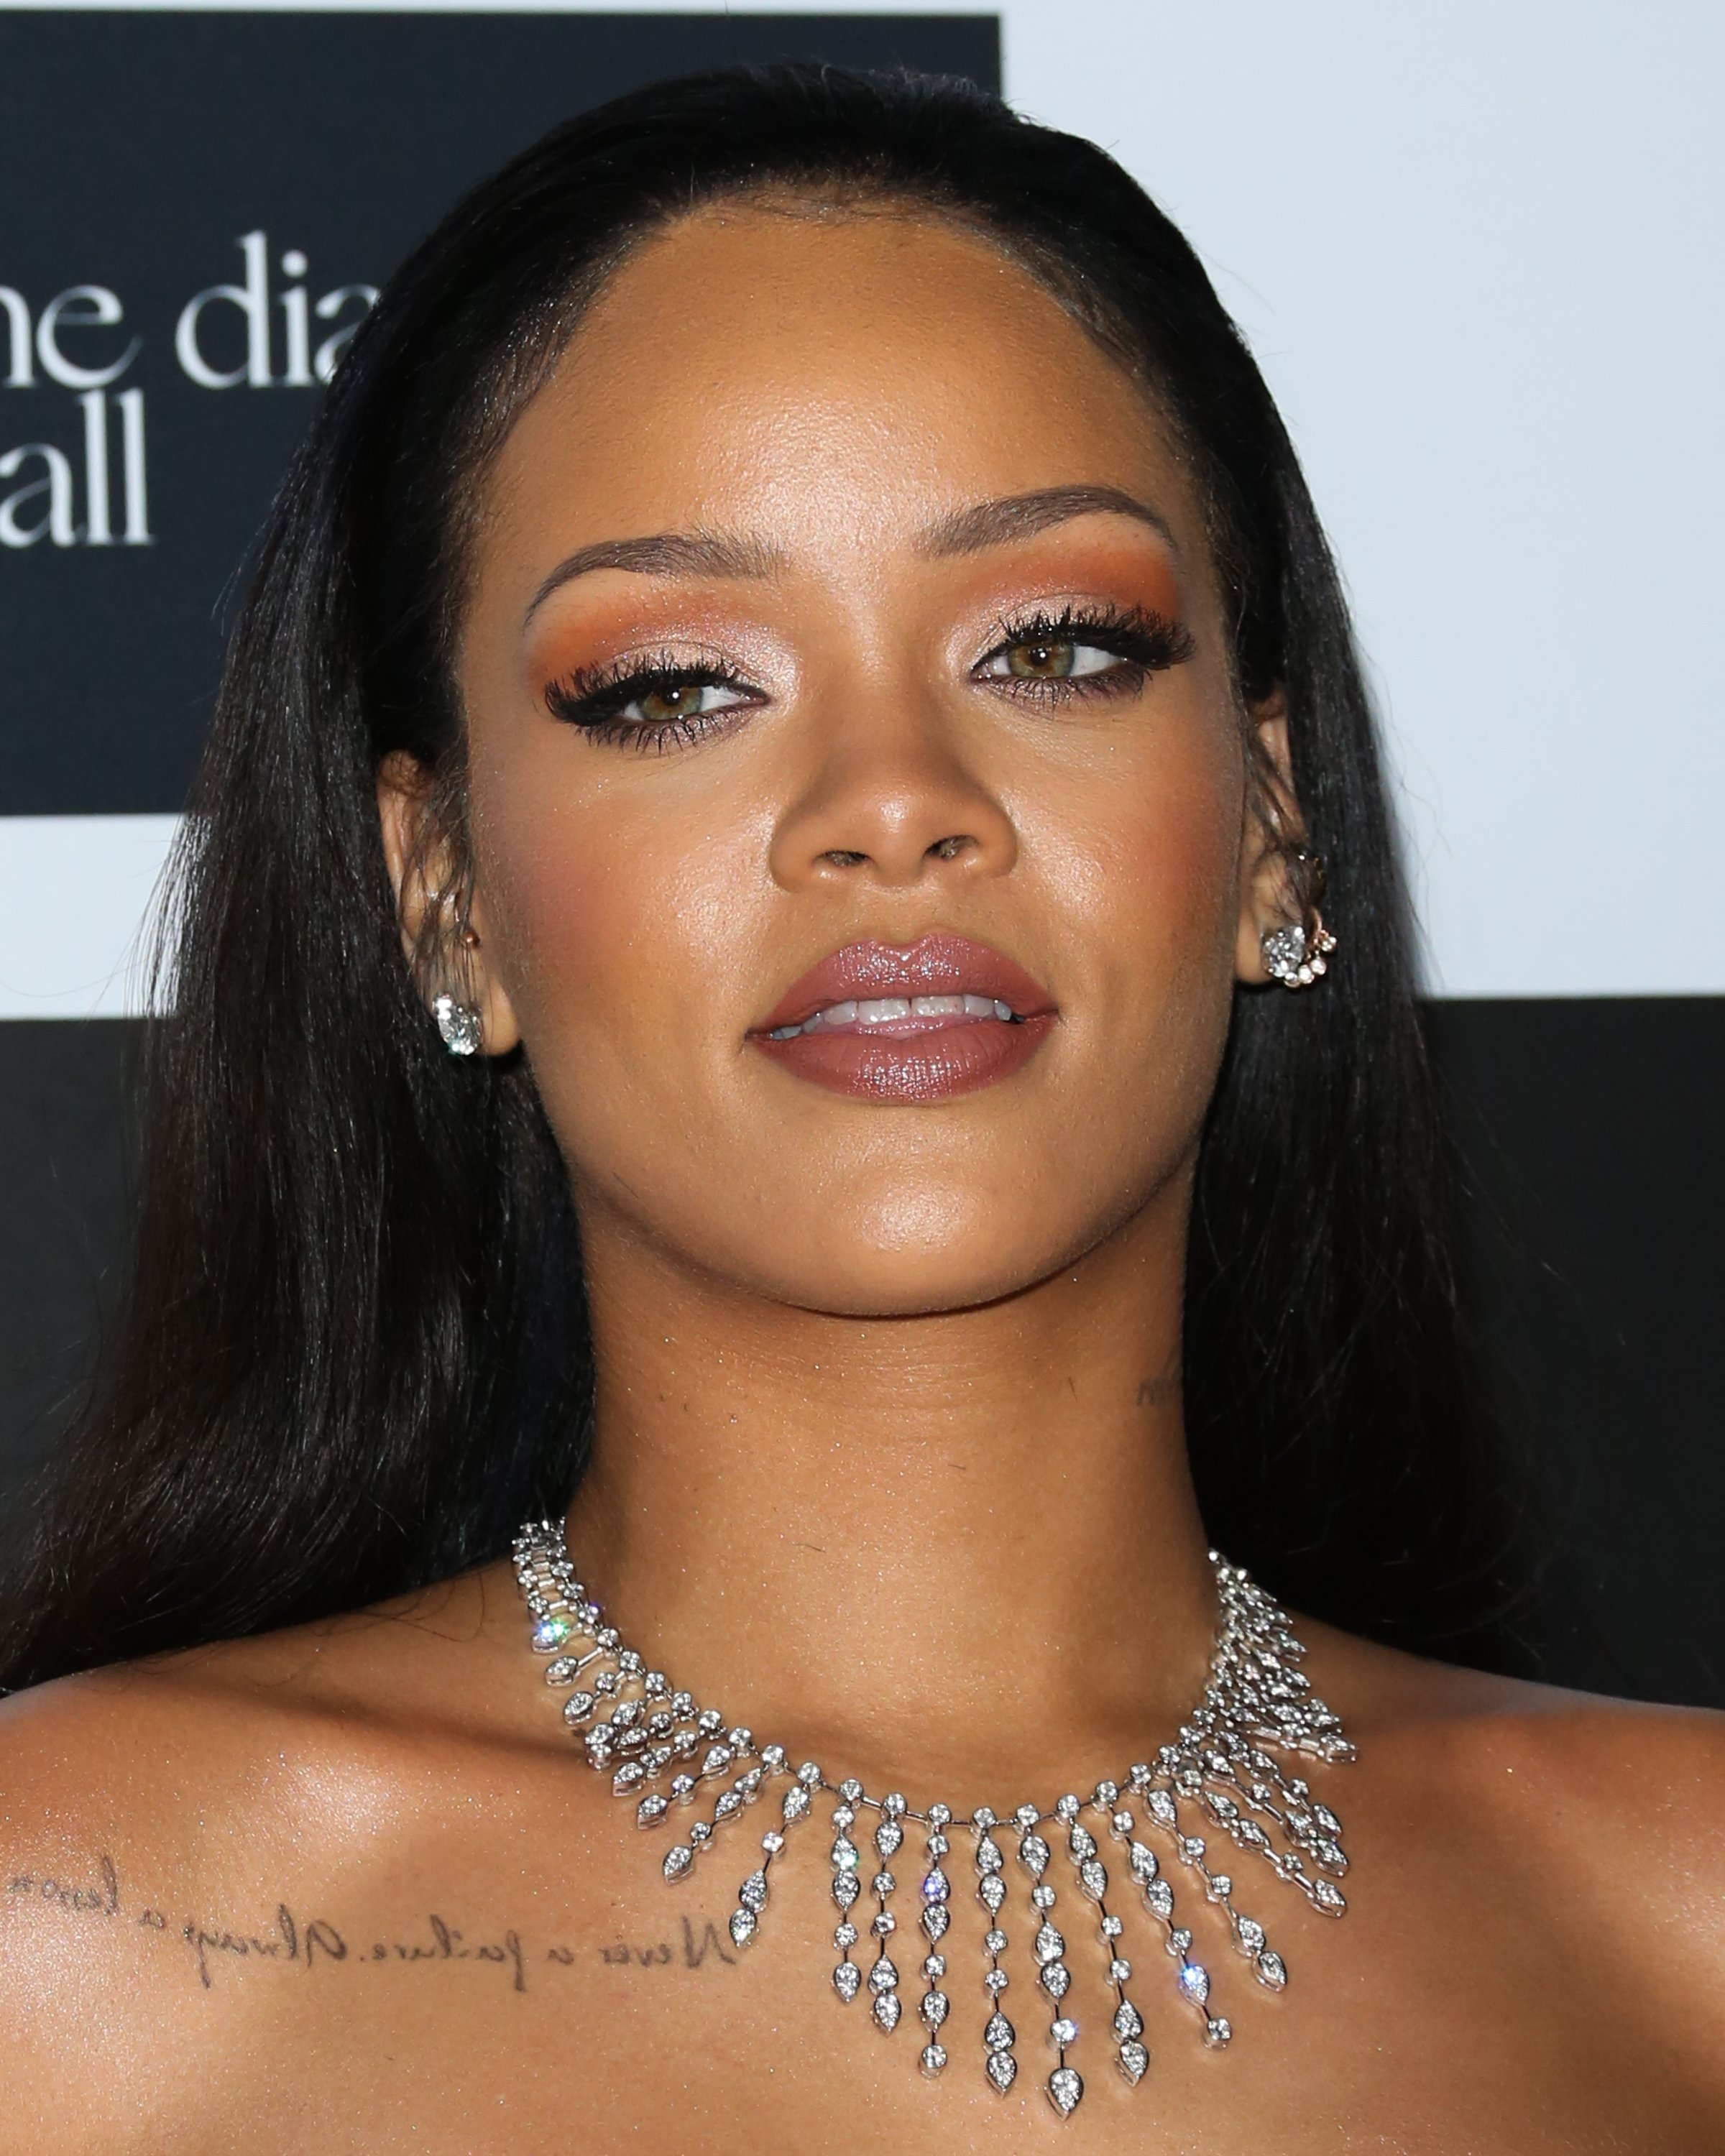 Rihanna hosting the 2nd Annual Diamond Ball in December 2015. | Photo: Getty Images